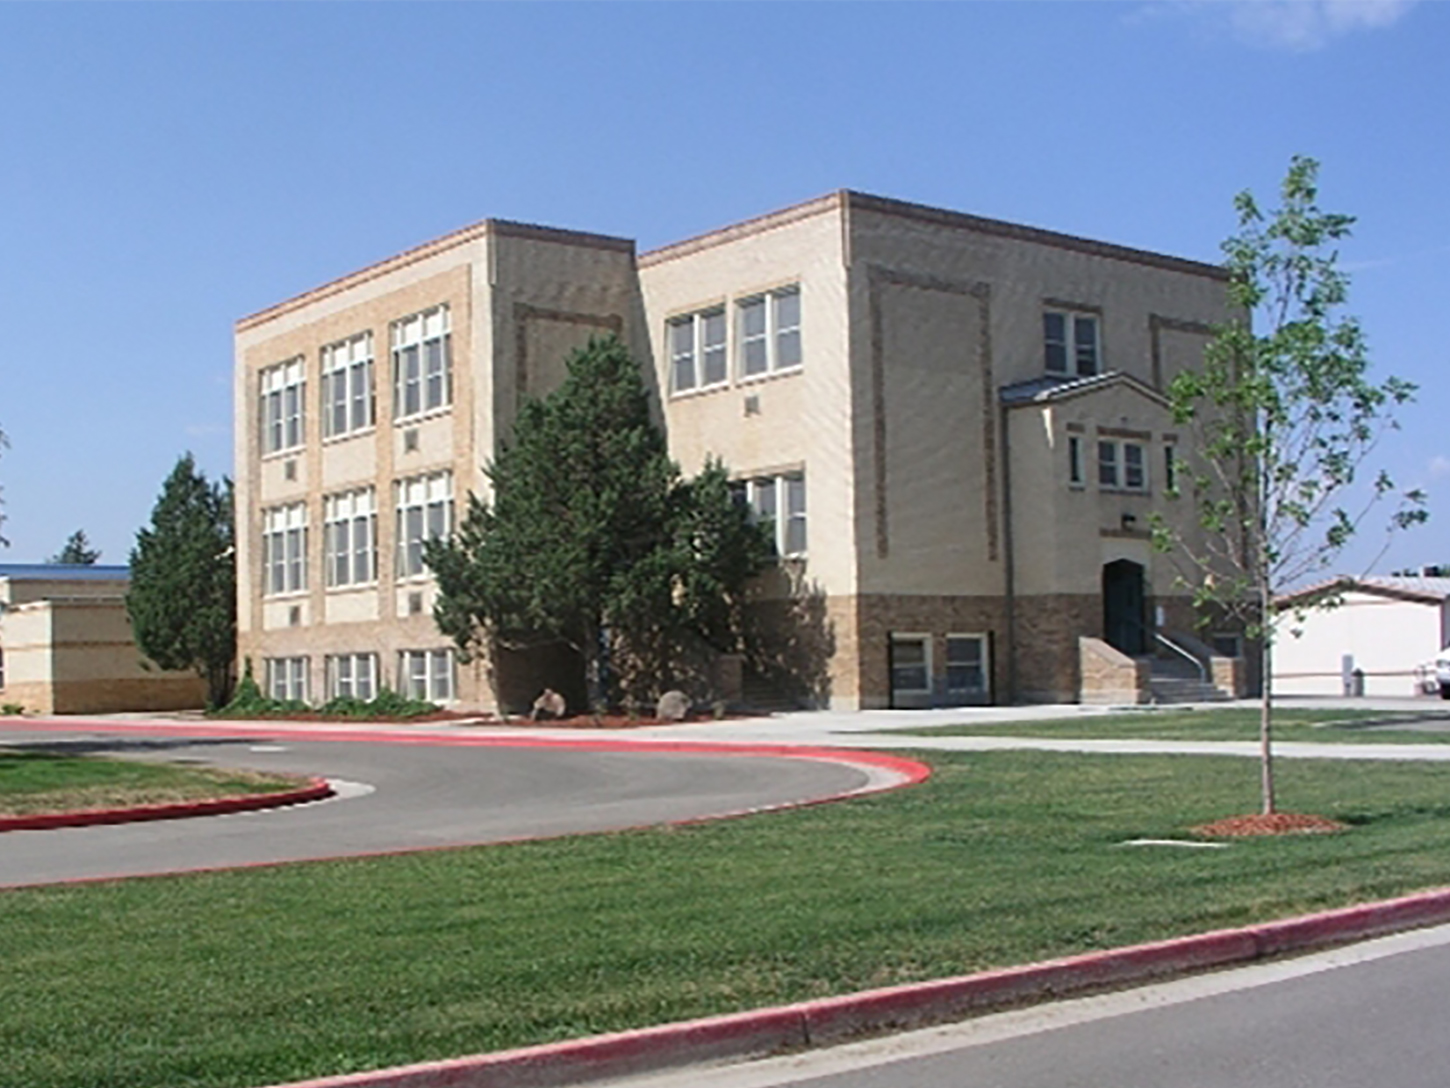 35-northern_colorado_new_homes_timnath_elementary_school